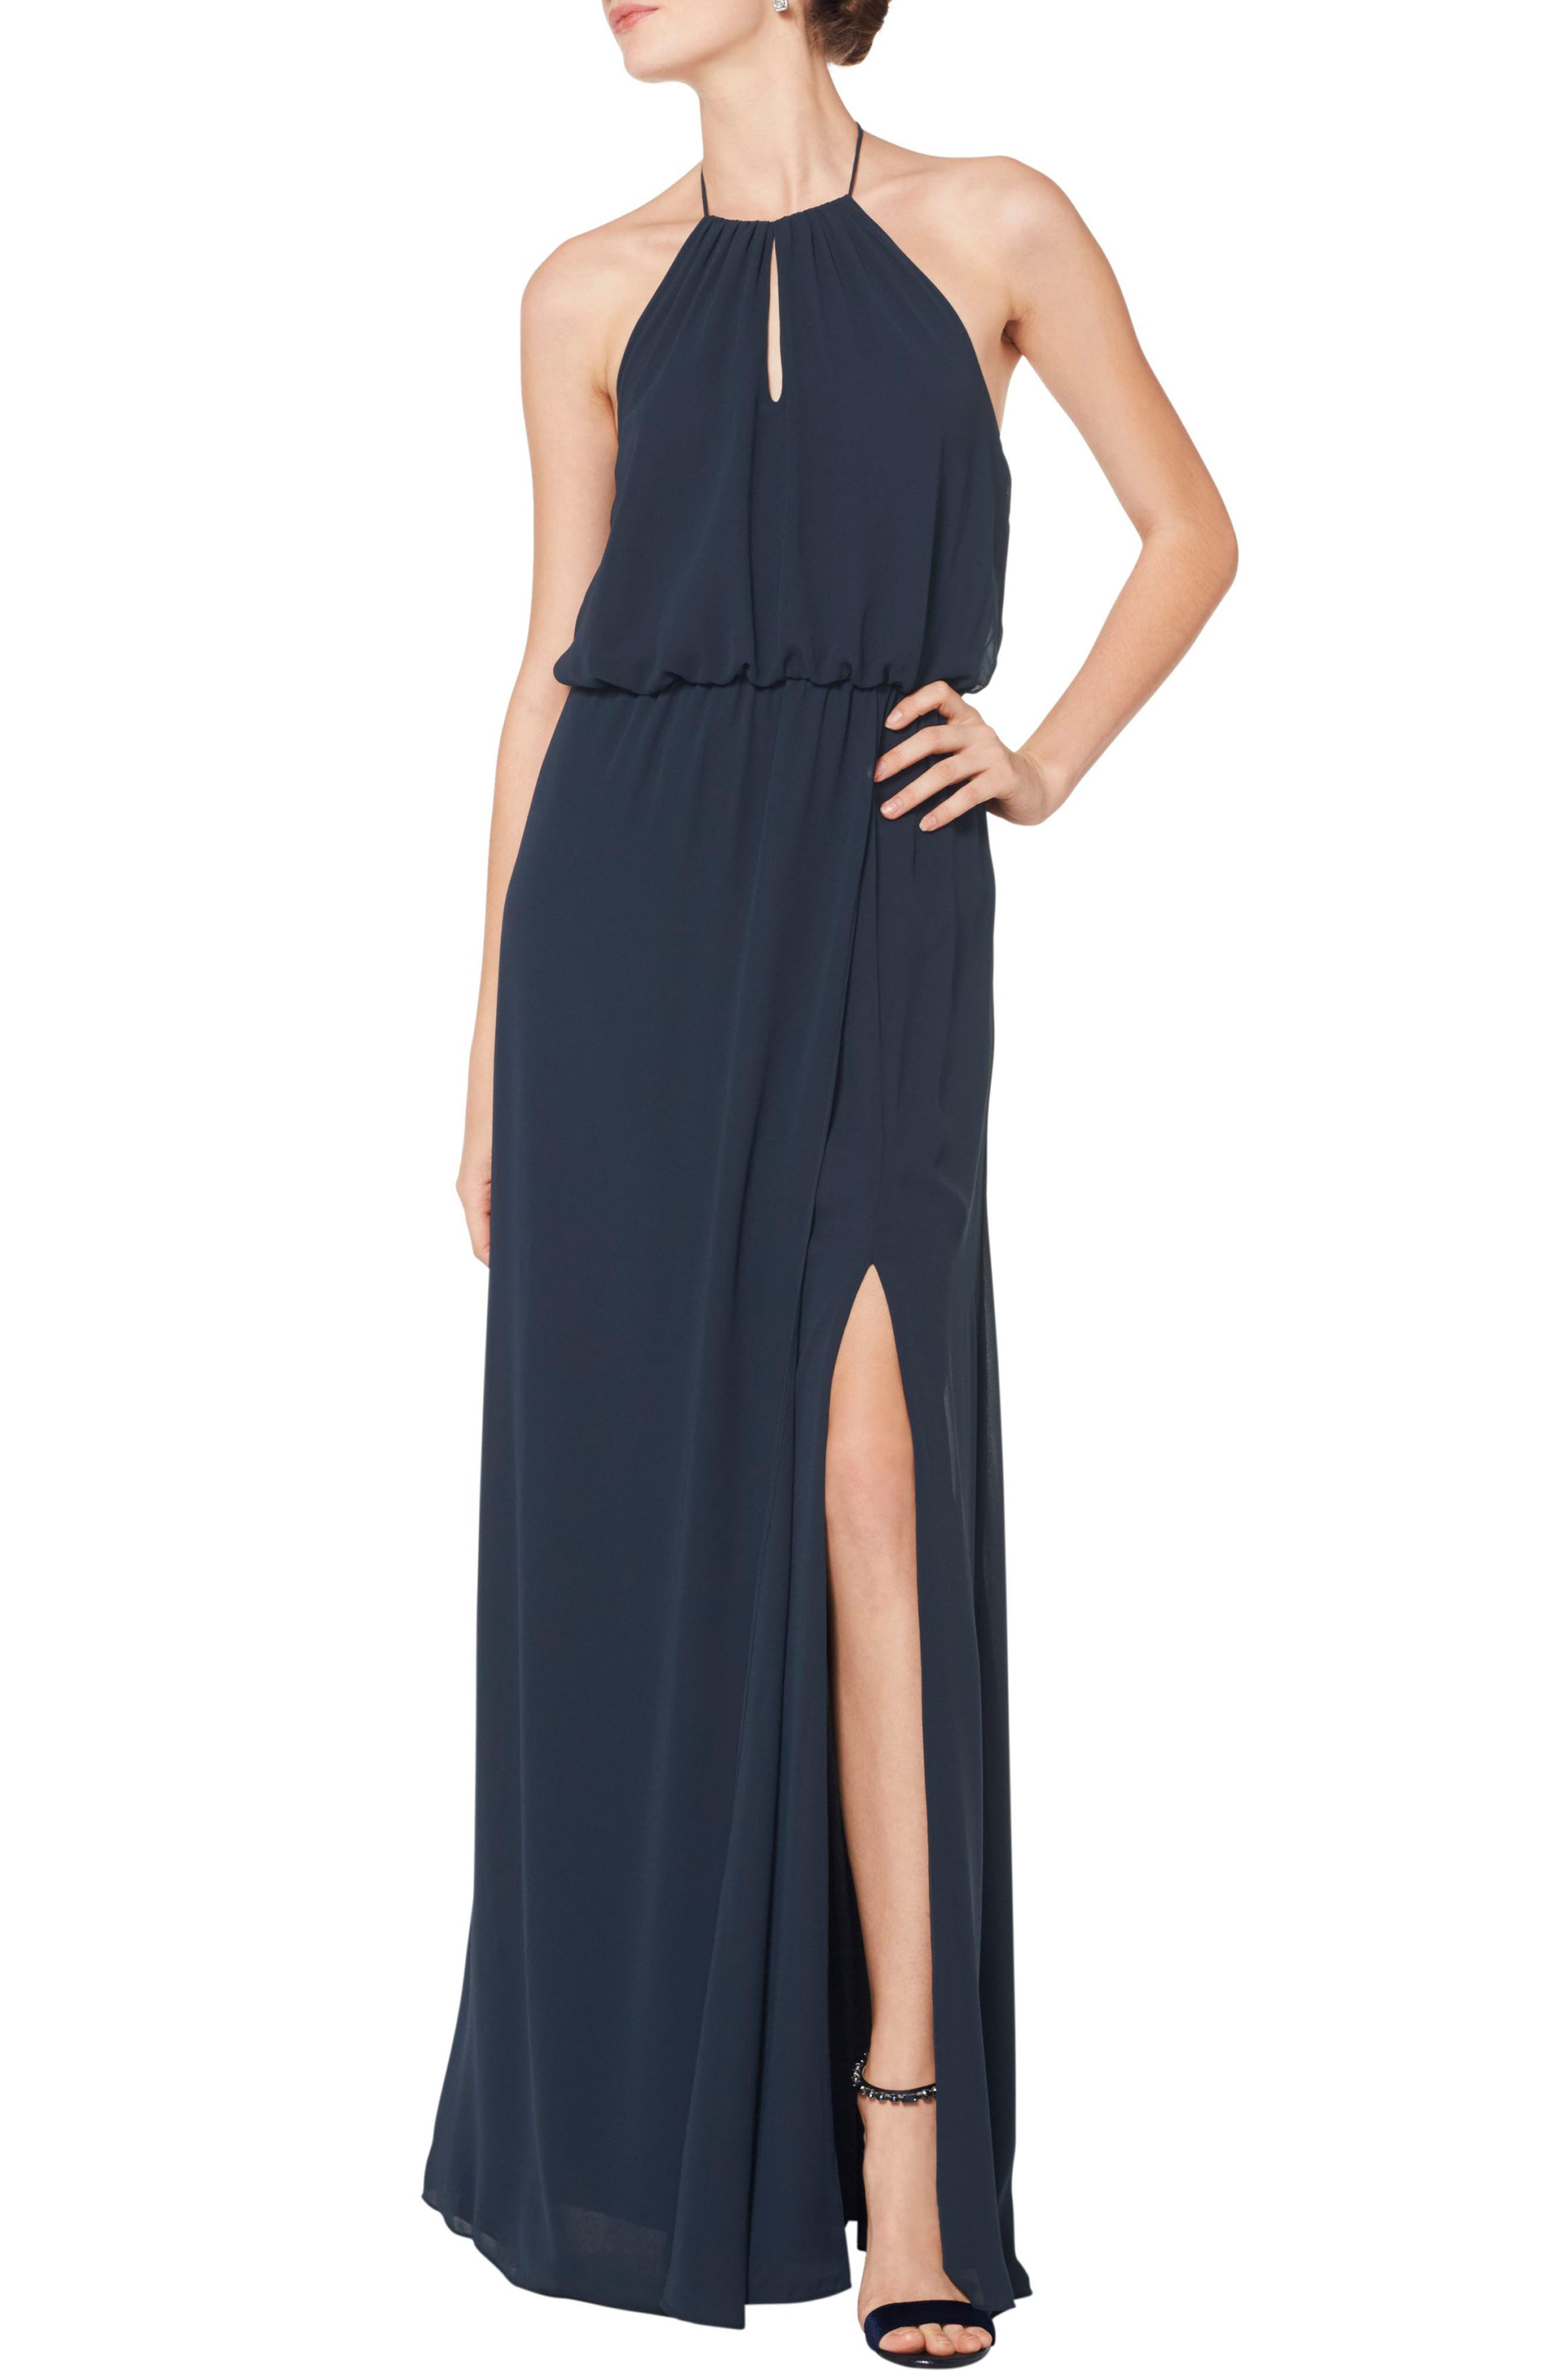 Simply romantic, with a blouson bodice and flowing chiffon, this halter-style gown looks effortlessly elegant-because it is. The A-line silhouette makes the dress effortlessly flattering and perfect for bridesmaids or wearing to a formal event. Style Name:#levkoff Blouson Chiffon A-Line Gown. Style Number: 5774987. Available in stores.